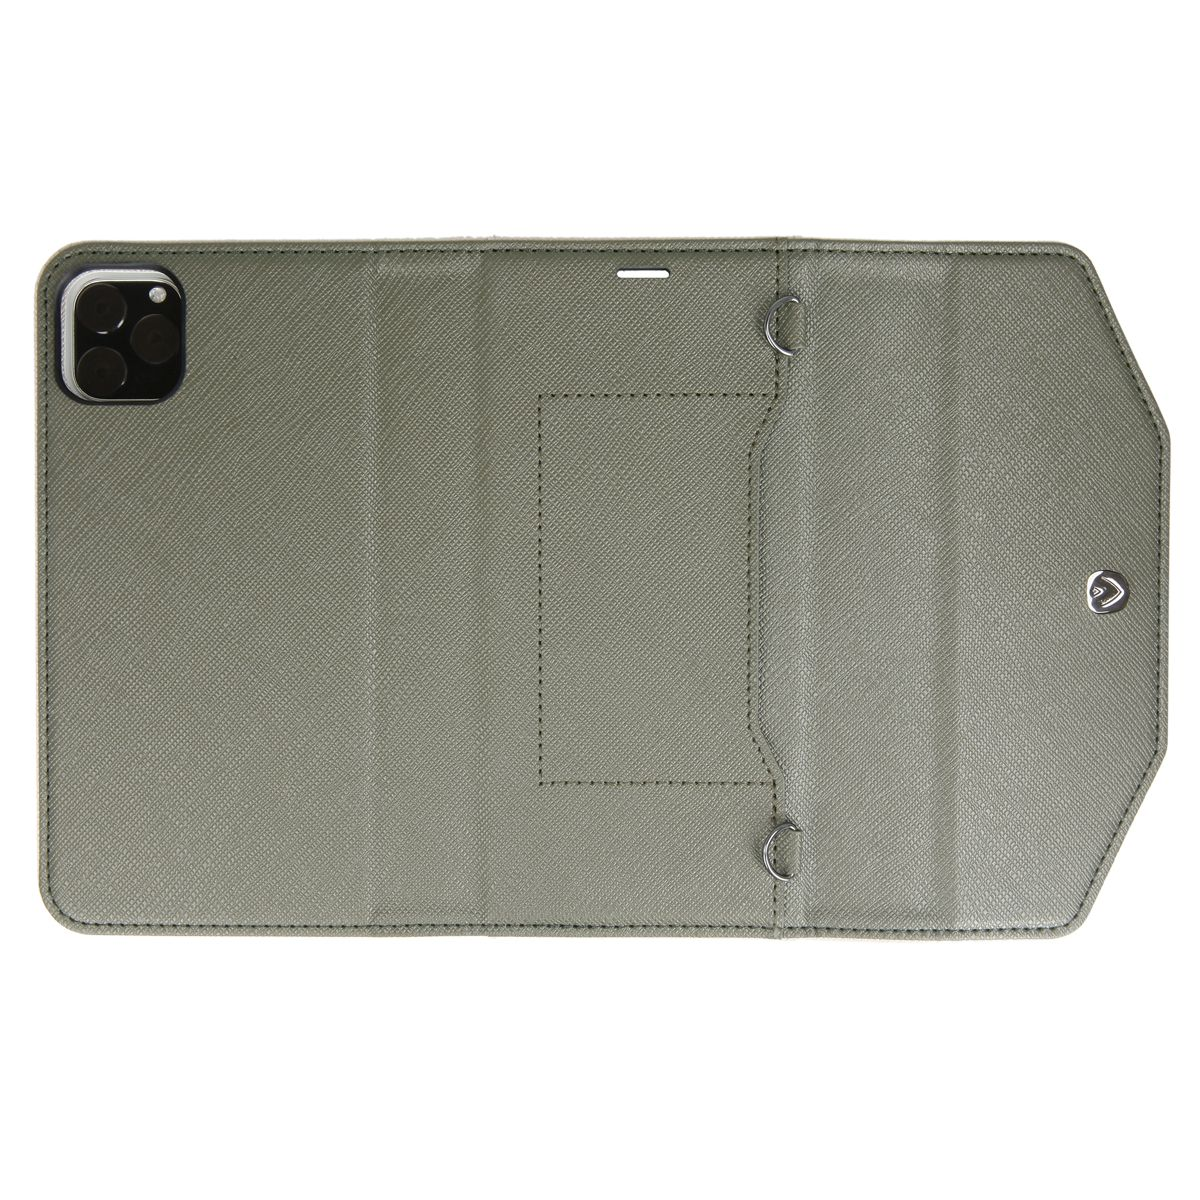 clutch green mode iphone 11 pro max